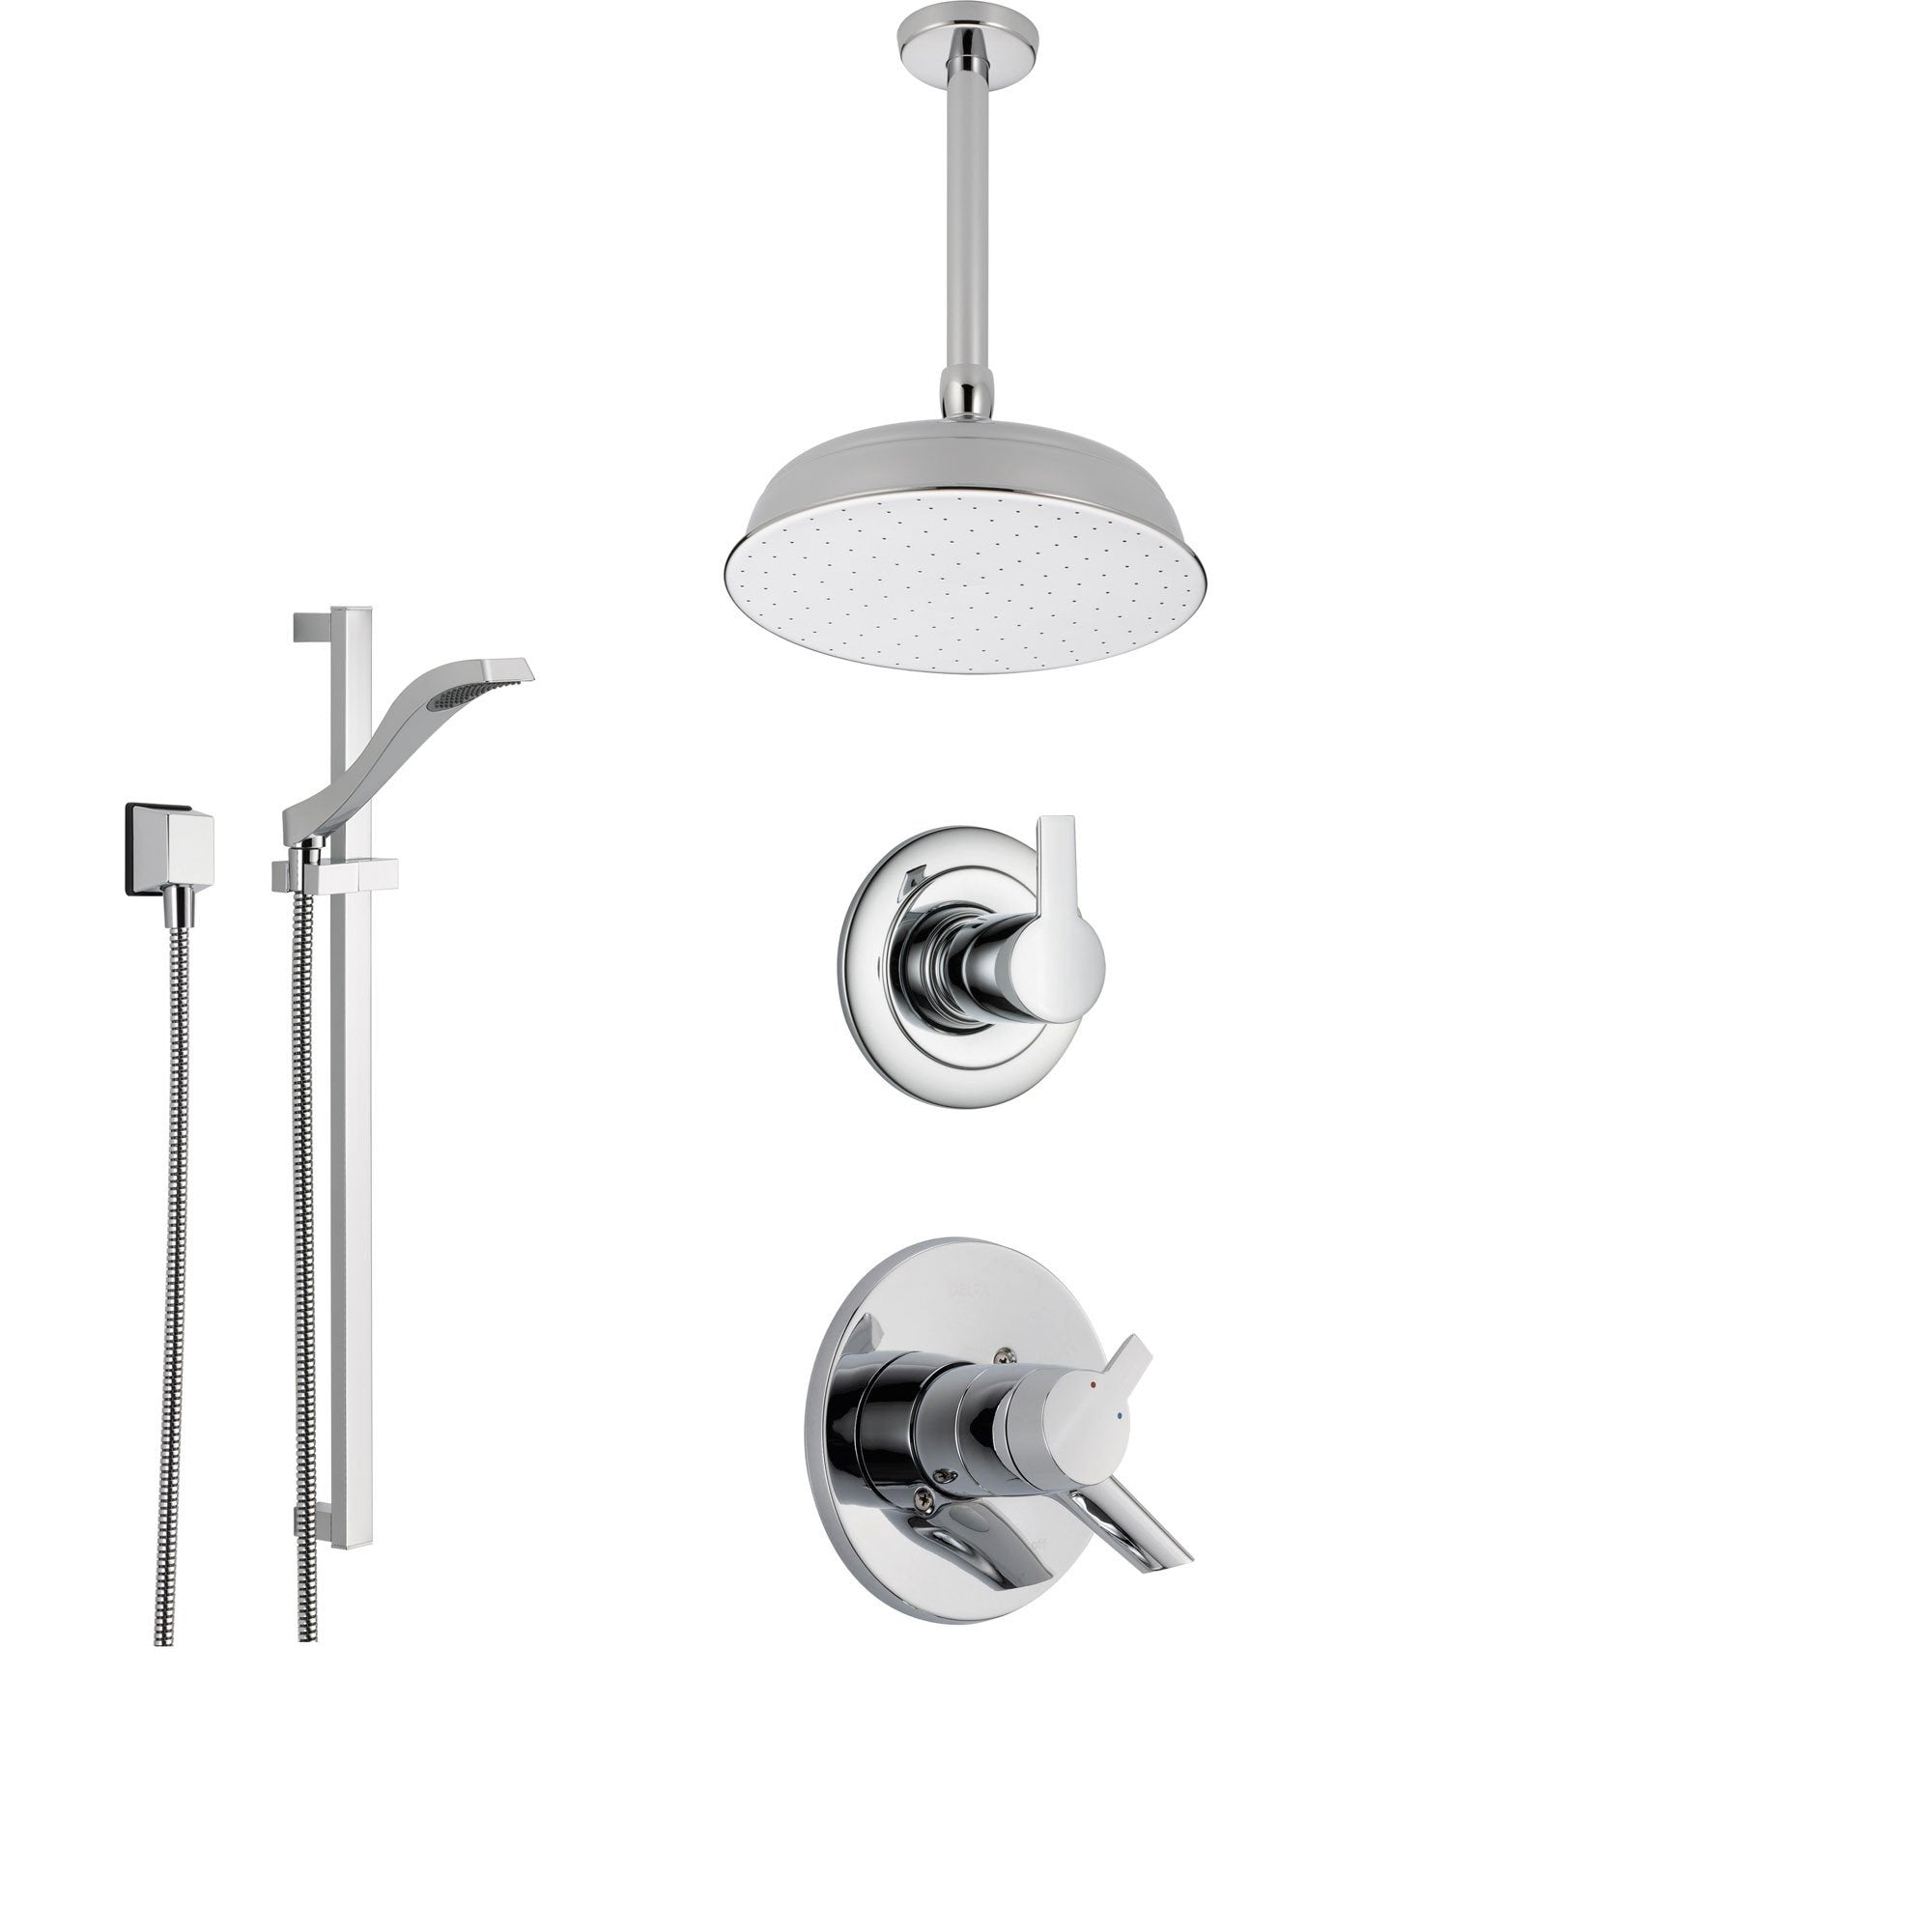 Delta Compel Chrome Shower System with Dual Control Shower Handle, 3-setting Diverter, Large Round Ceiling Mount Showerhead, and Handheld Shower Spray SS176181